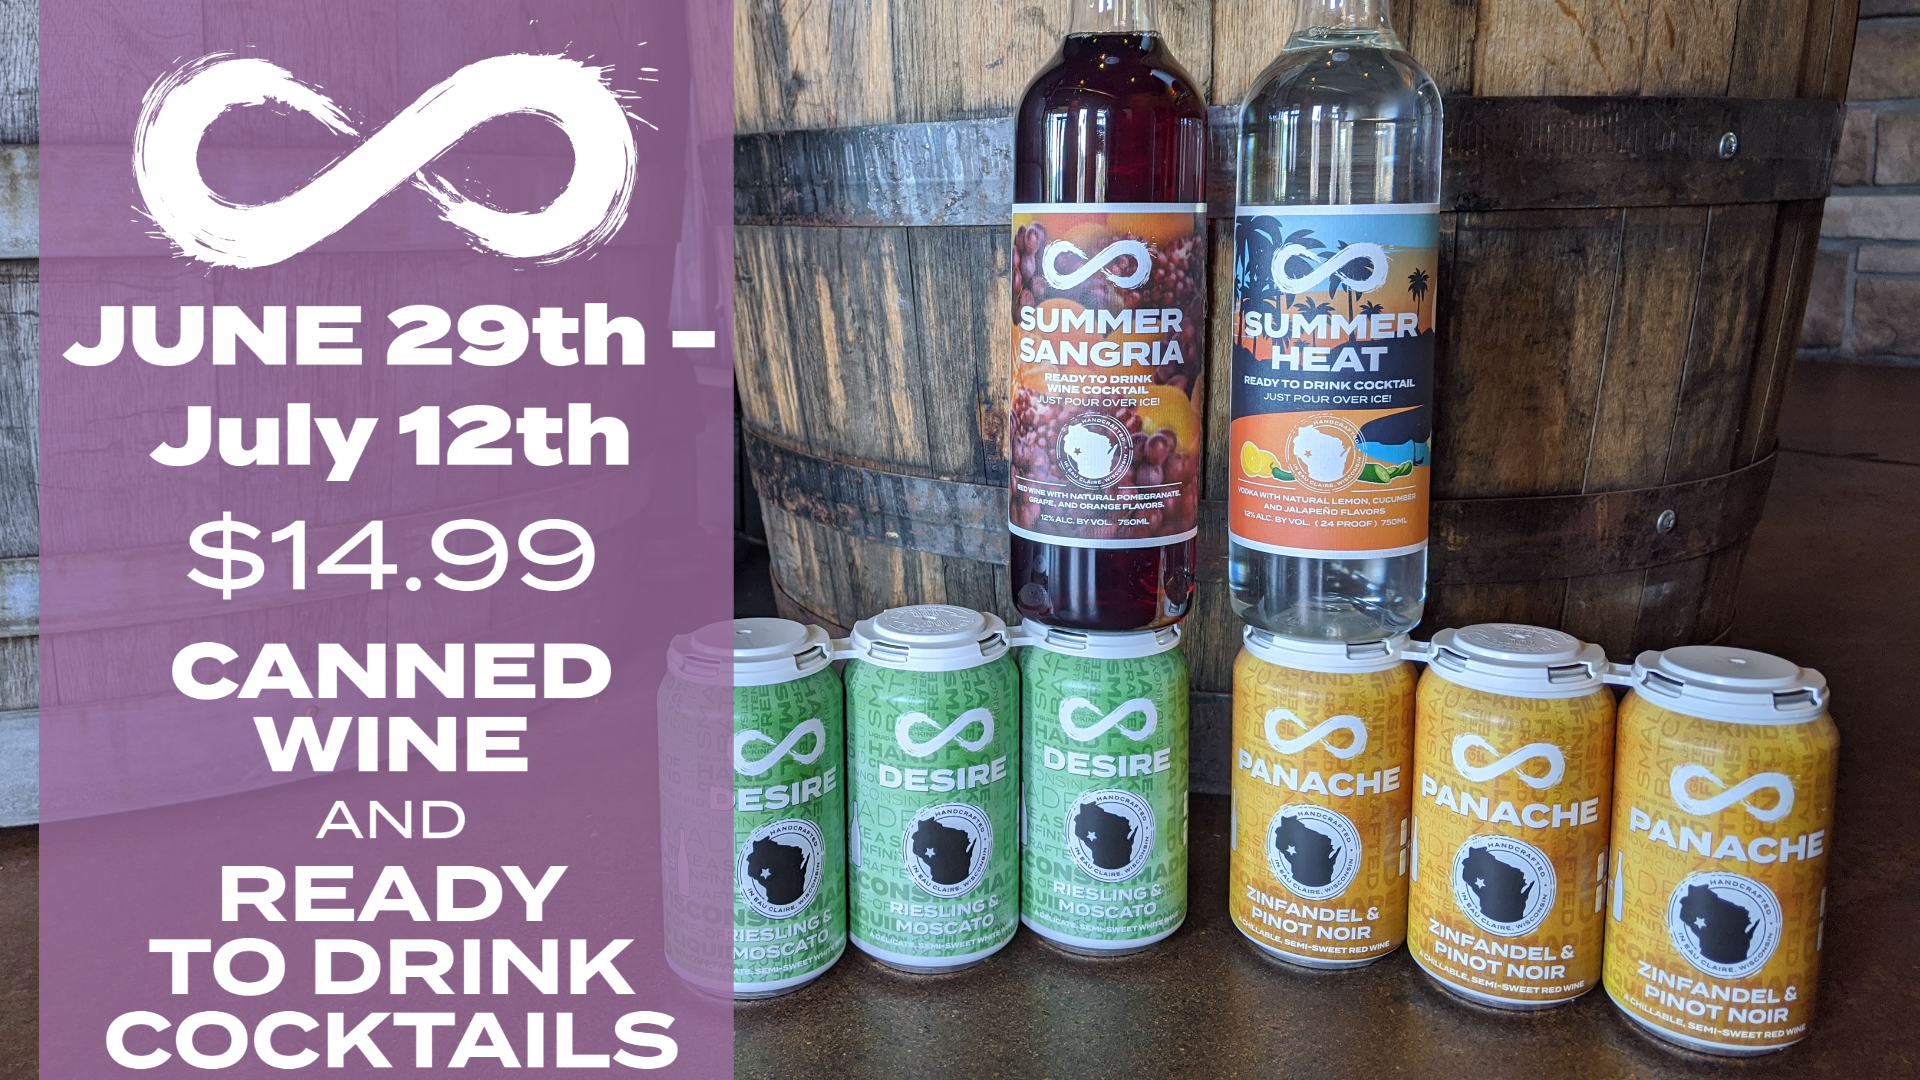 $14.99 CANNED WINE & READY TO DRINK COCKTAILS